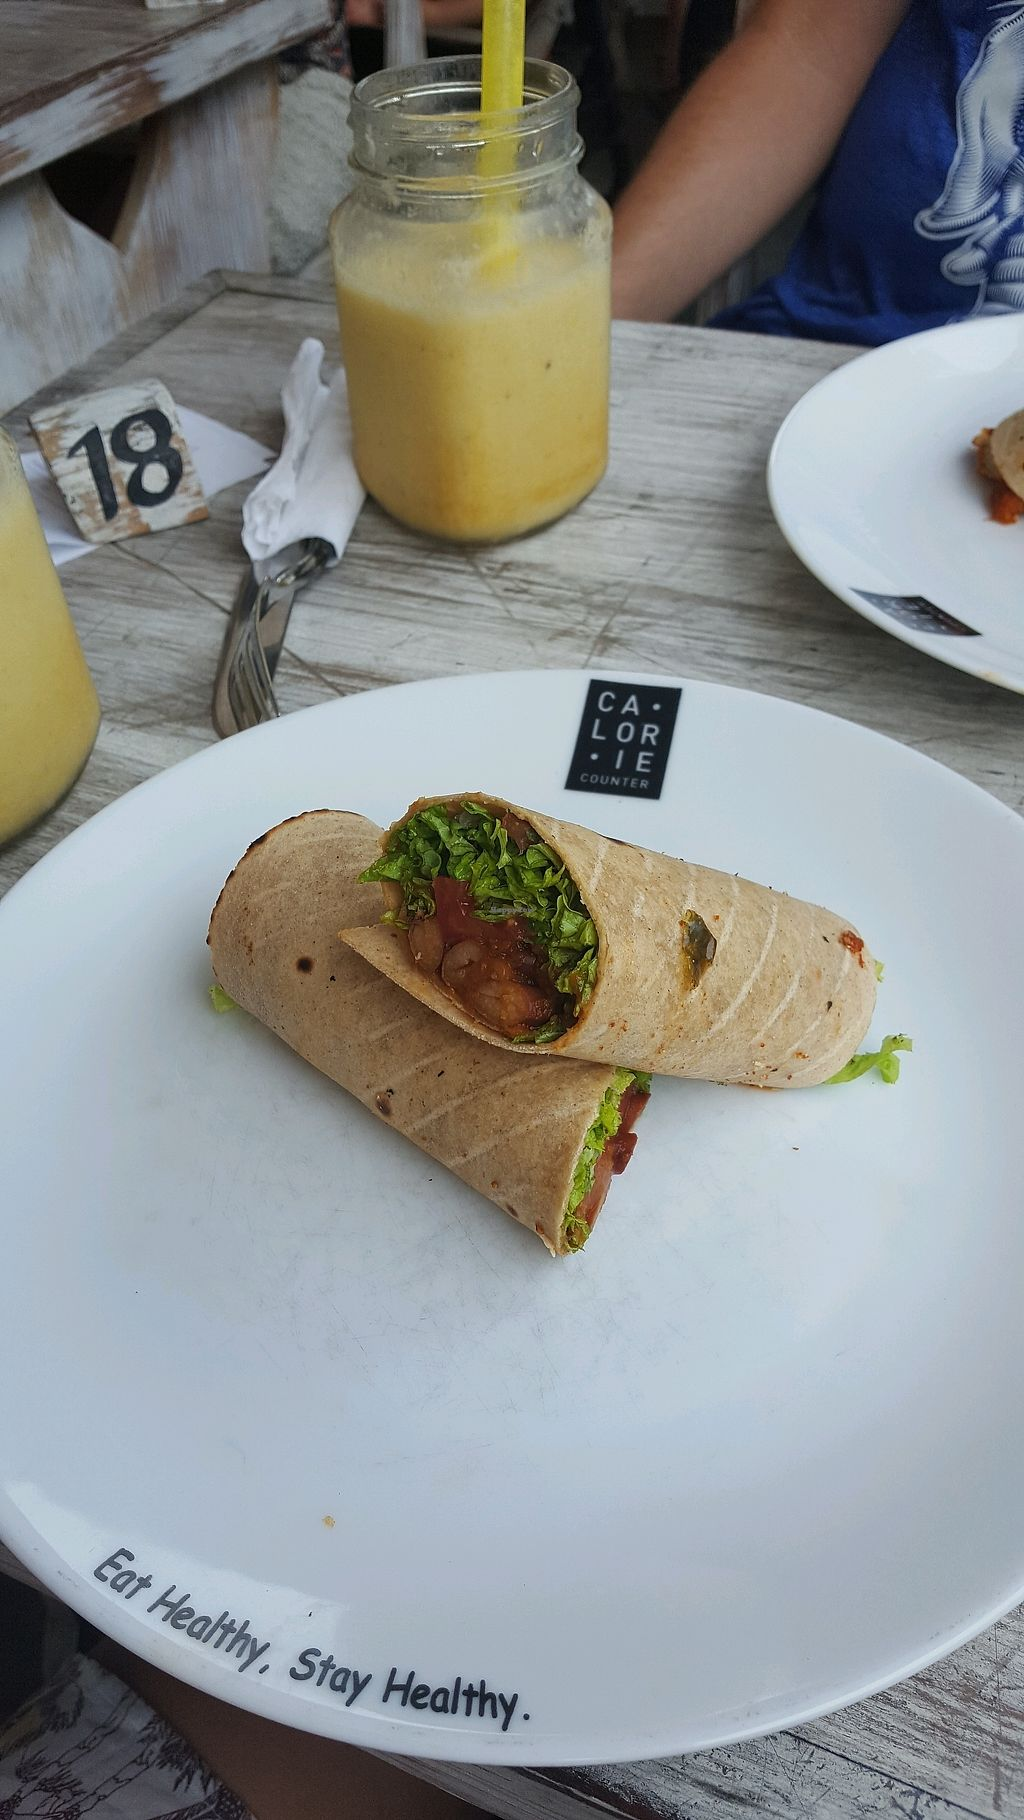 """Photo of Calorie Counter  by <a href=""""/members/profile/Taowaki"""">Taowaki</a> <br/>vegetable atta wrap <br/> January 17, 2018  - <a href='/contact/abuse/image/107880/347475'>Report</a>"""